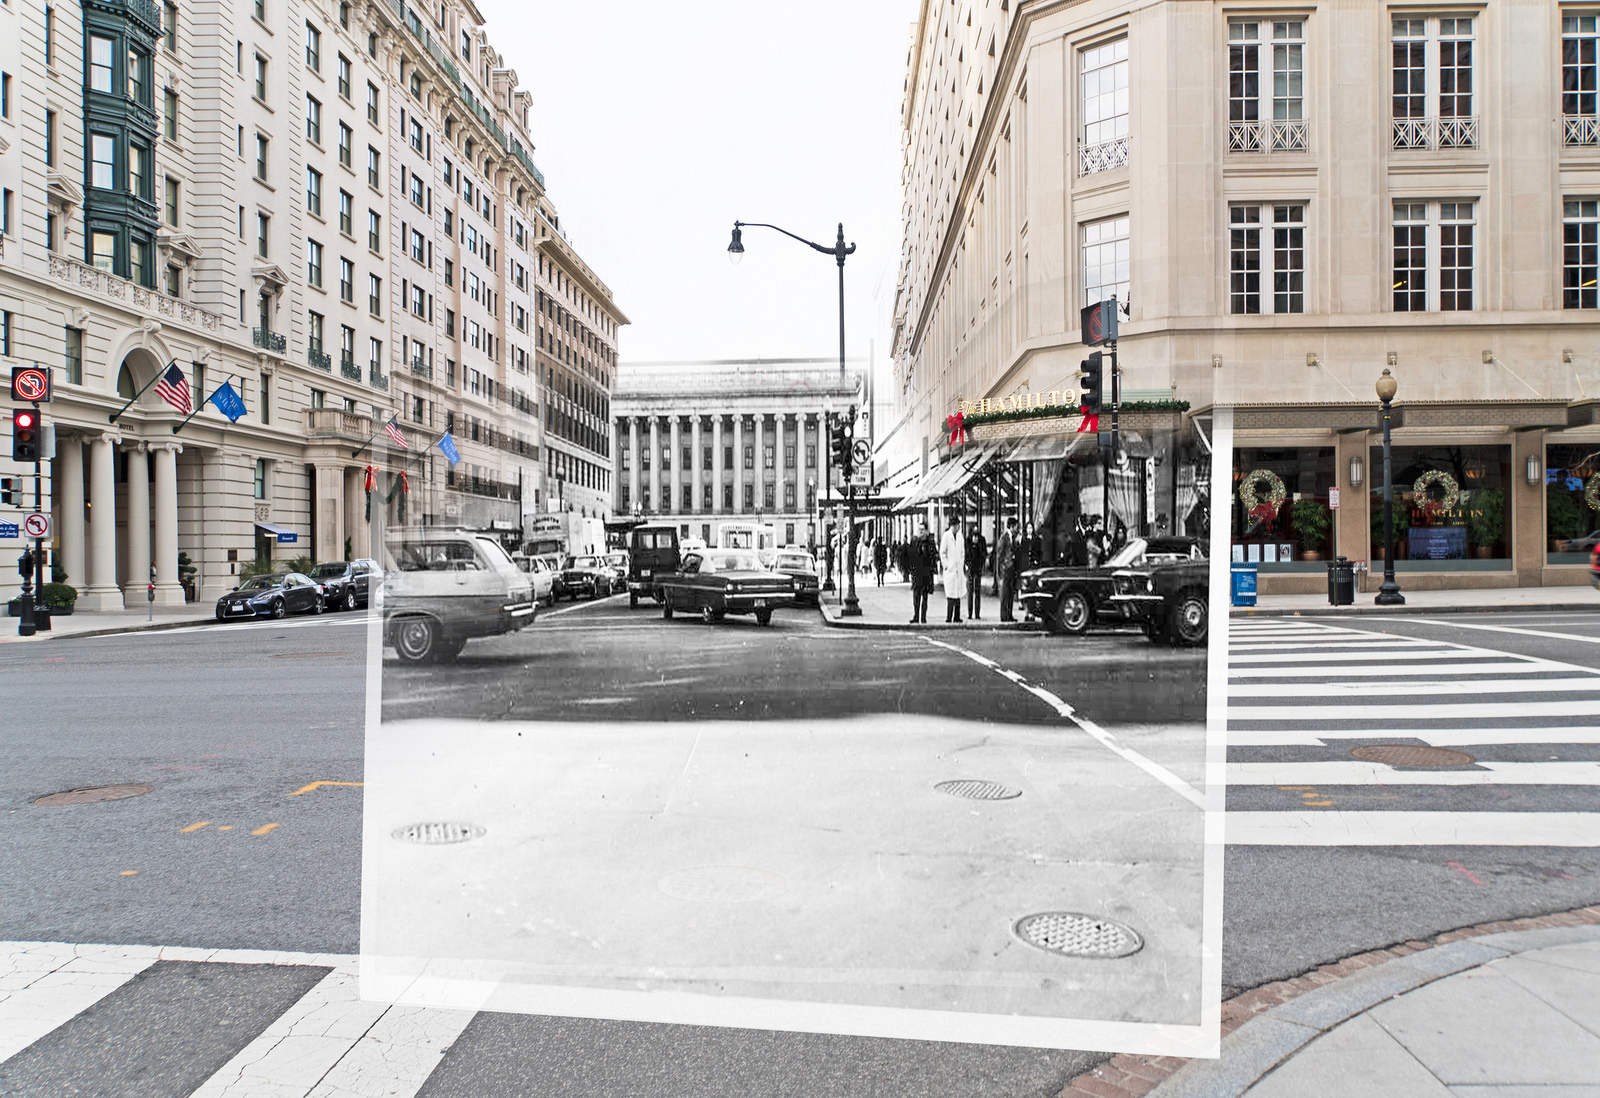 2017.12.26 RePhotography Washington, DC USA then and now 1706-Edit